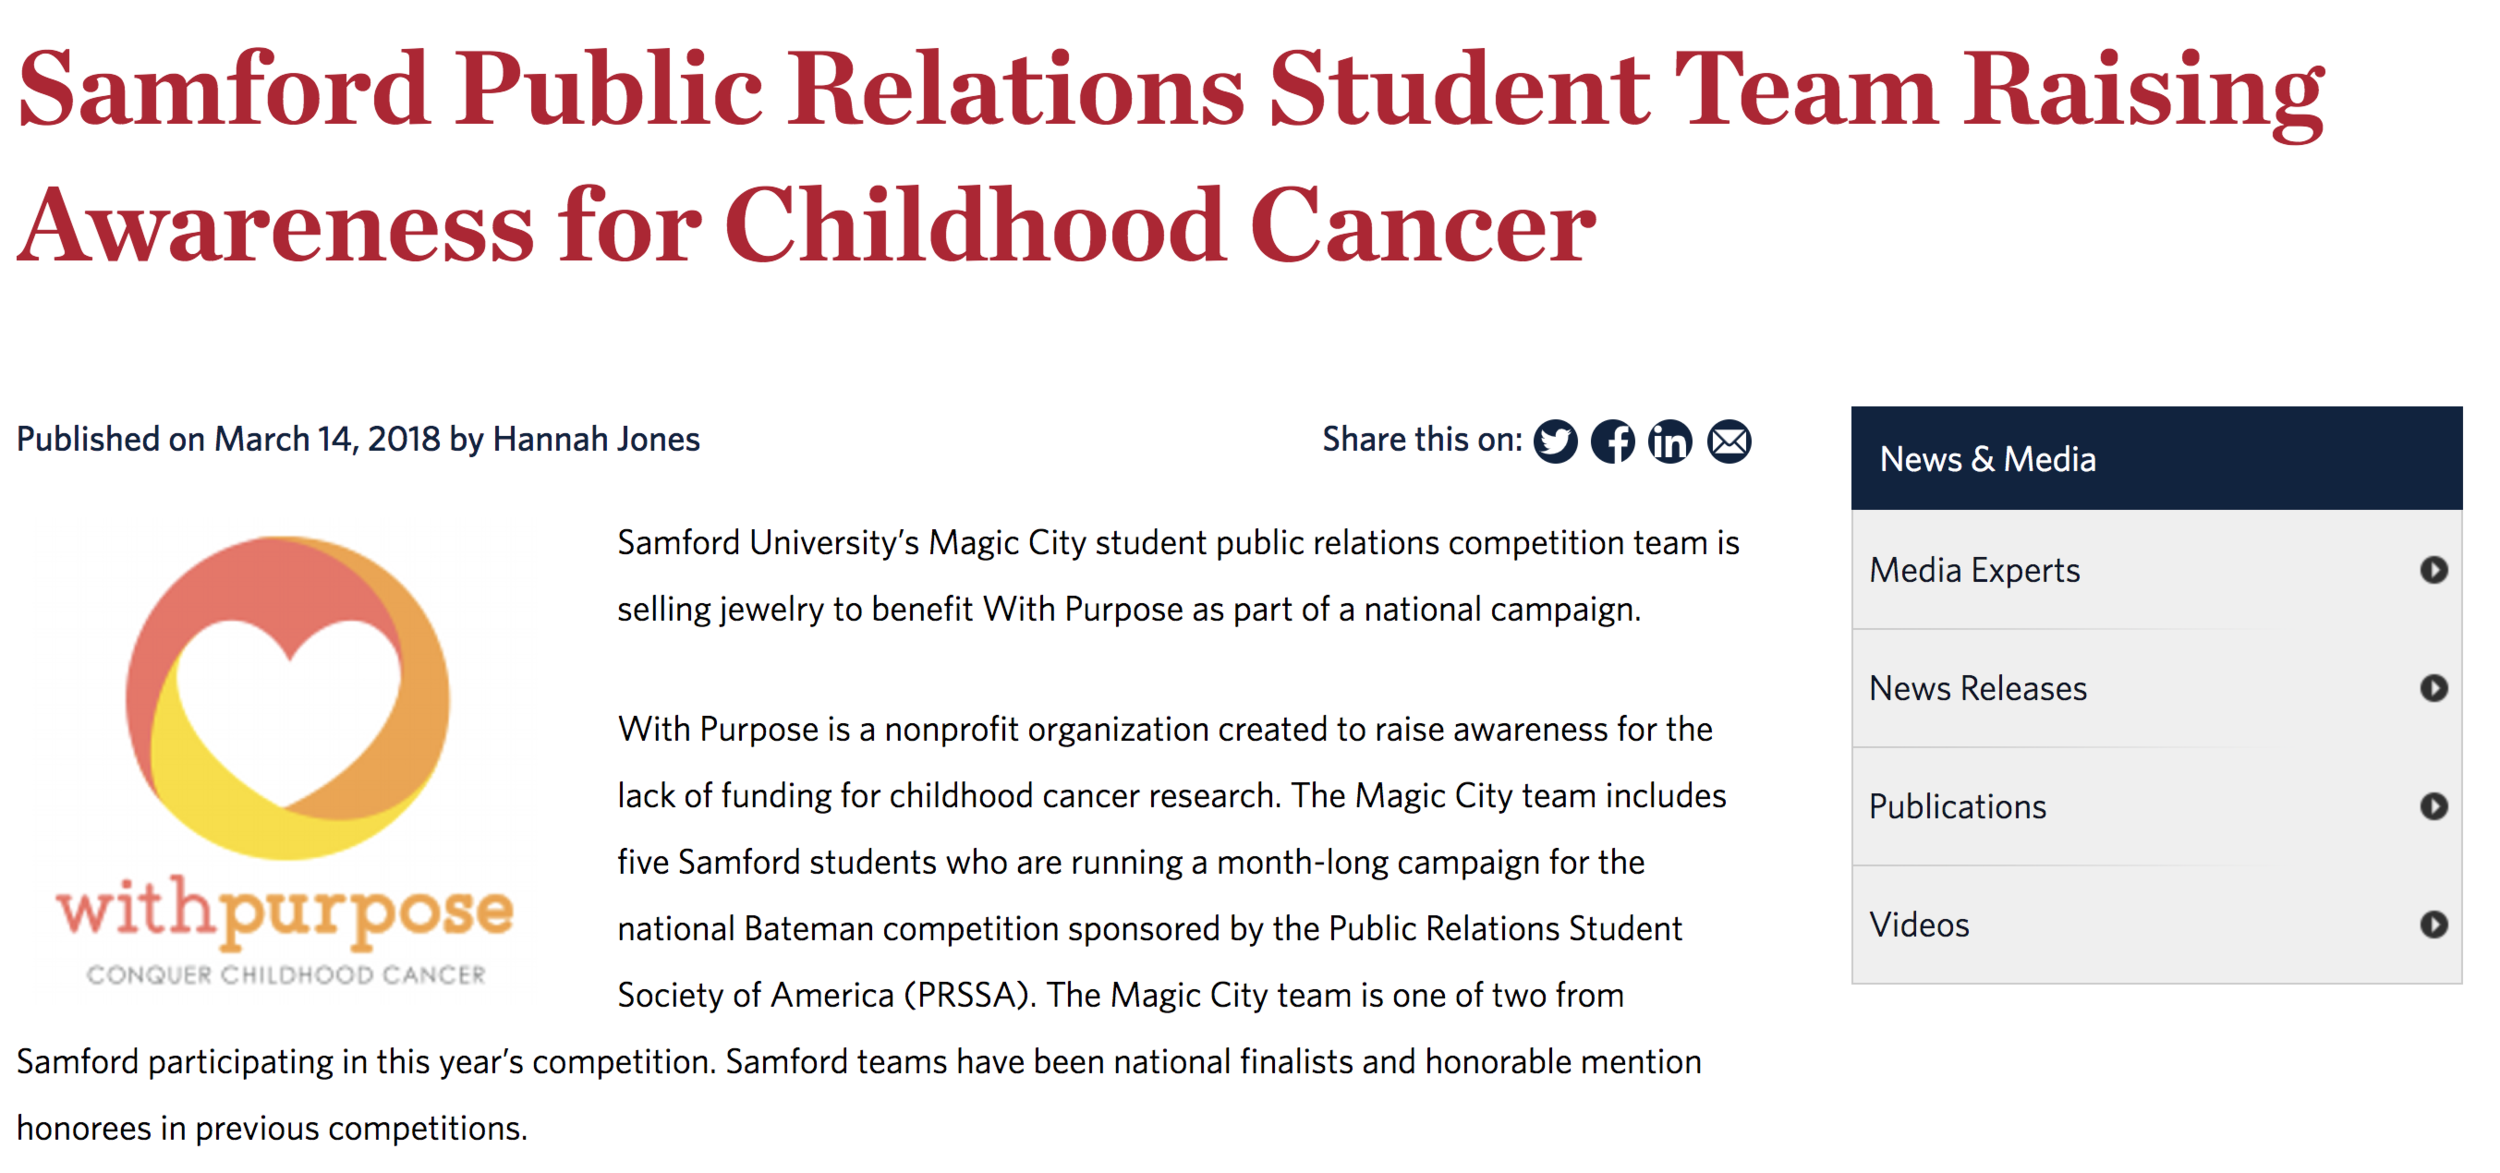 Samford Public Relations Student Team Raising Awareness for Childhood Cancer